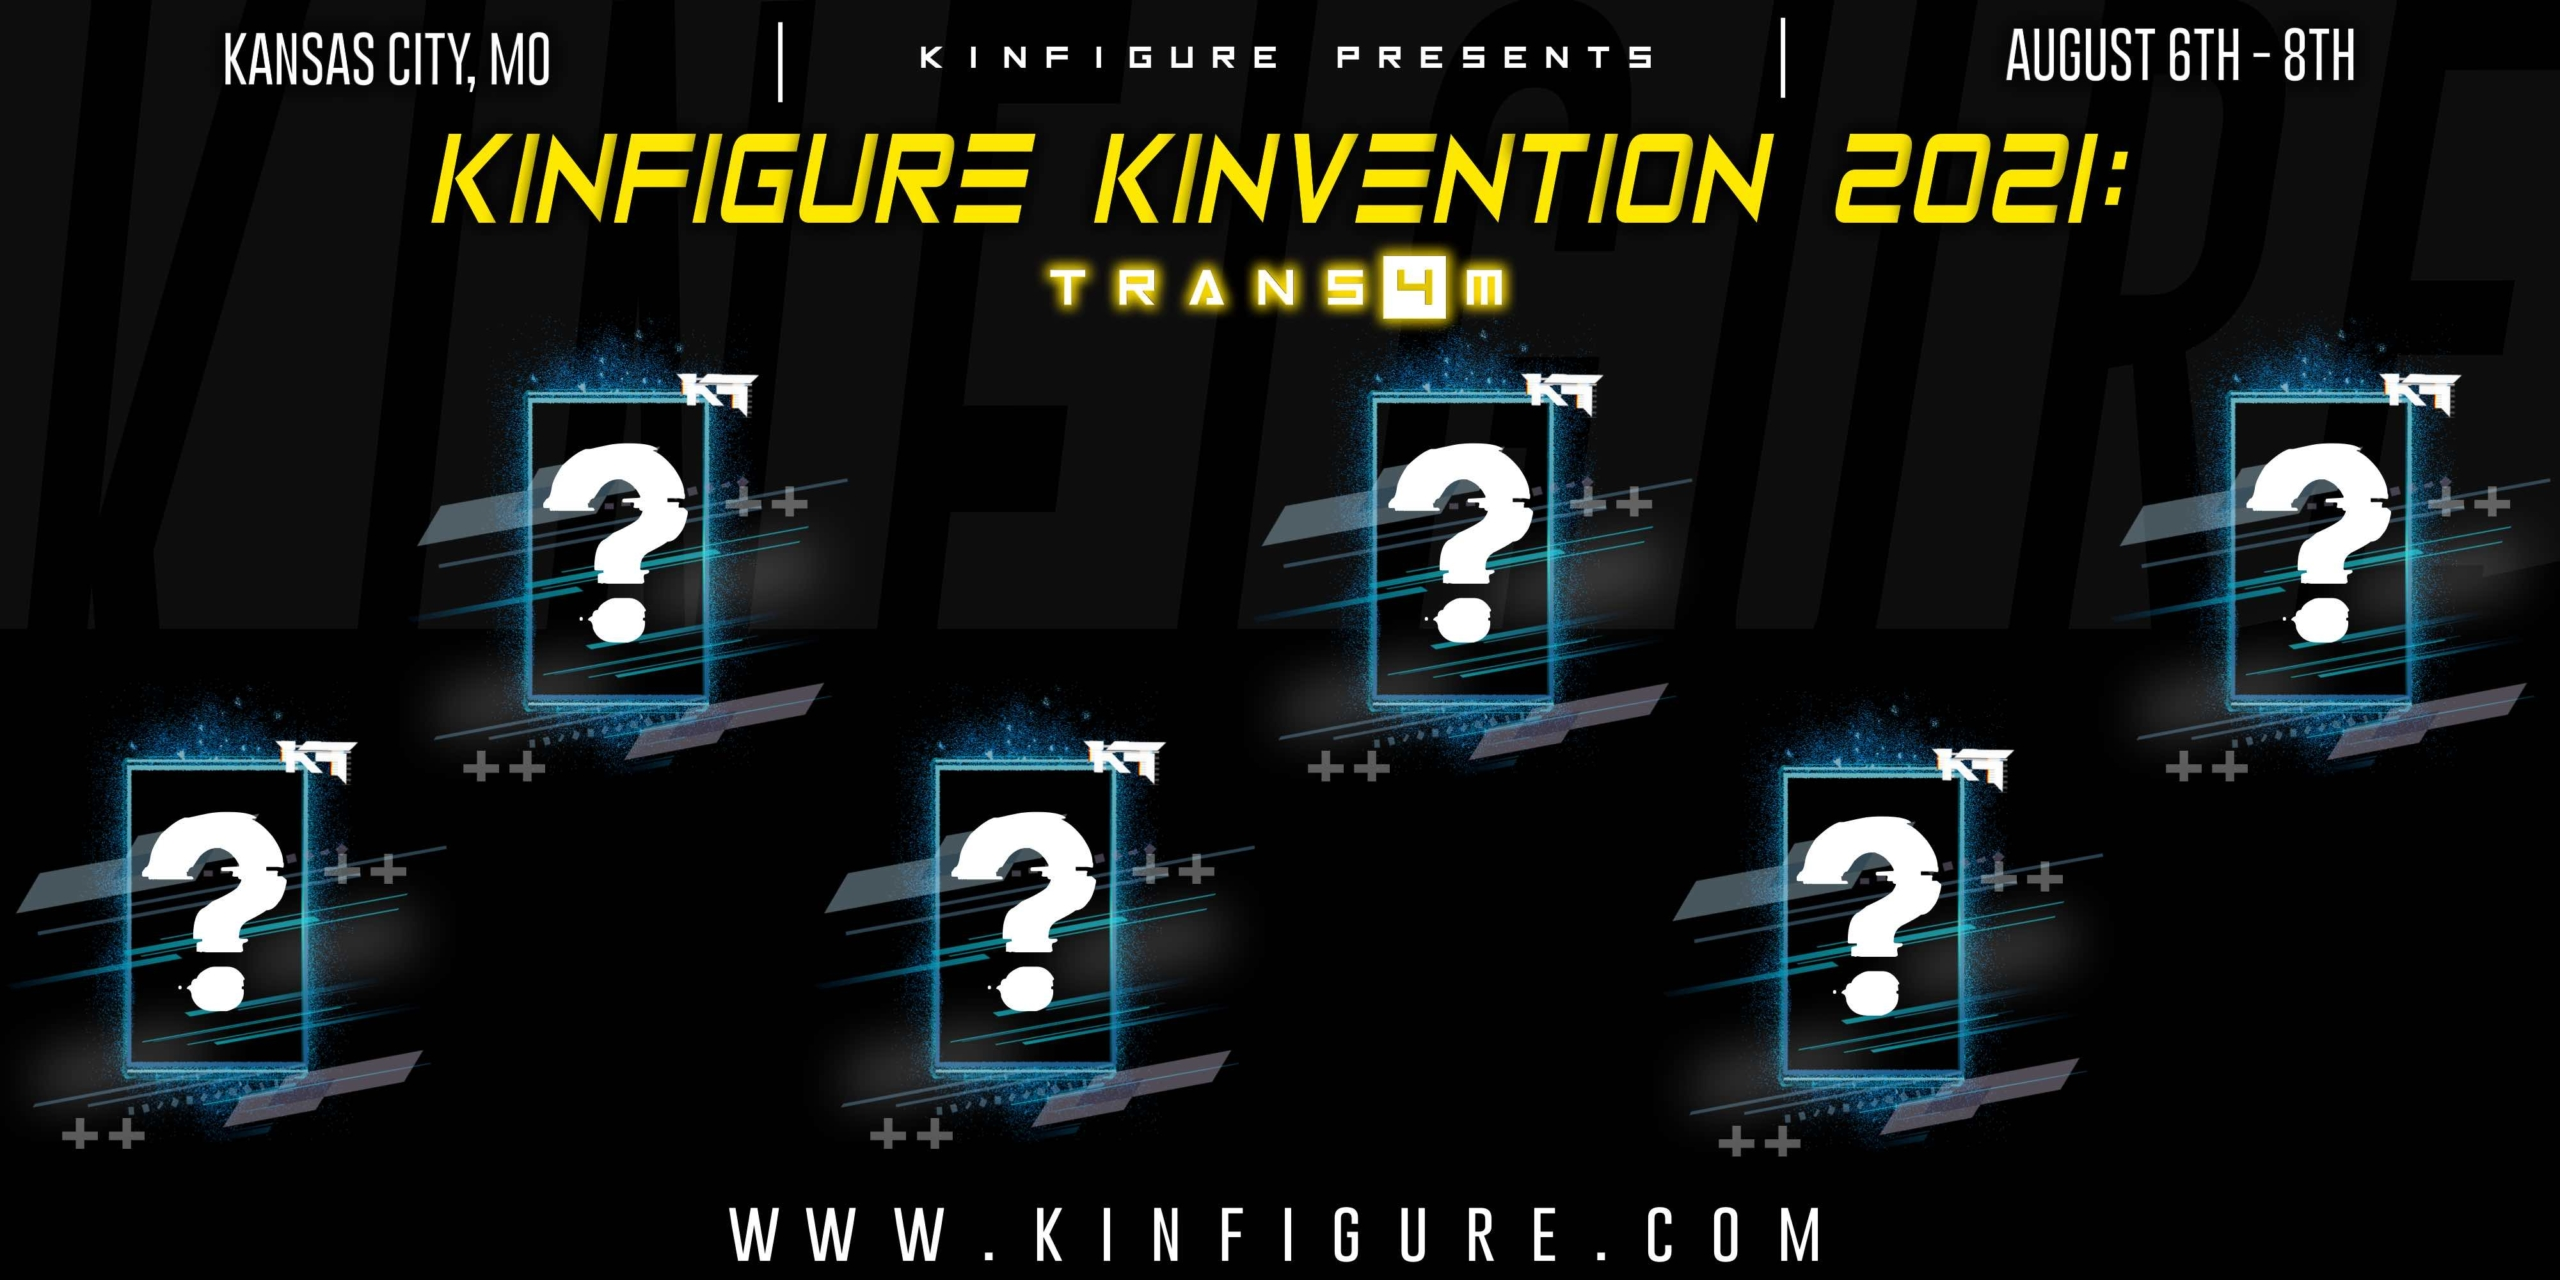 KinFigure Kinvention 2021: Trans4m